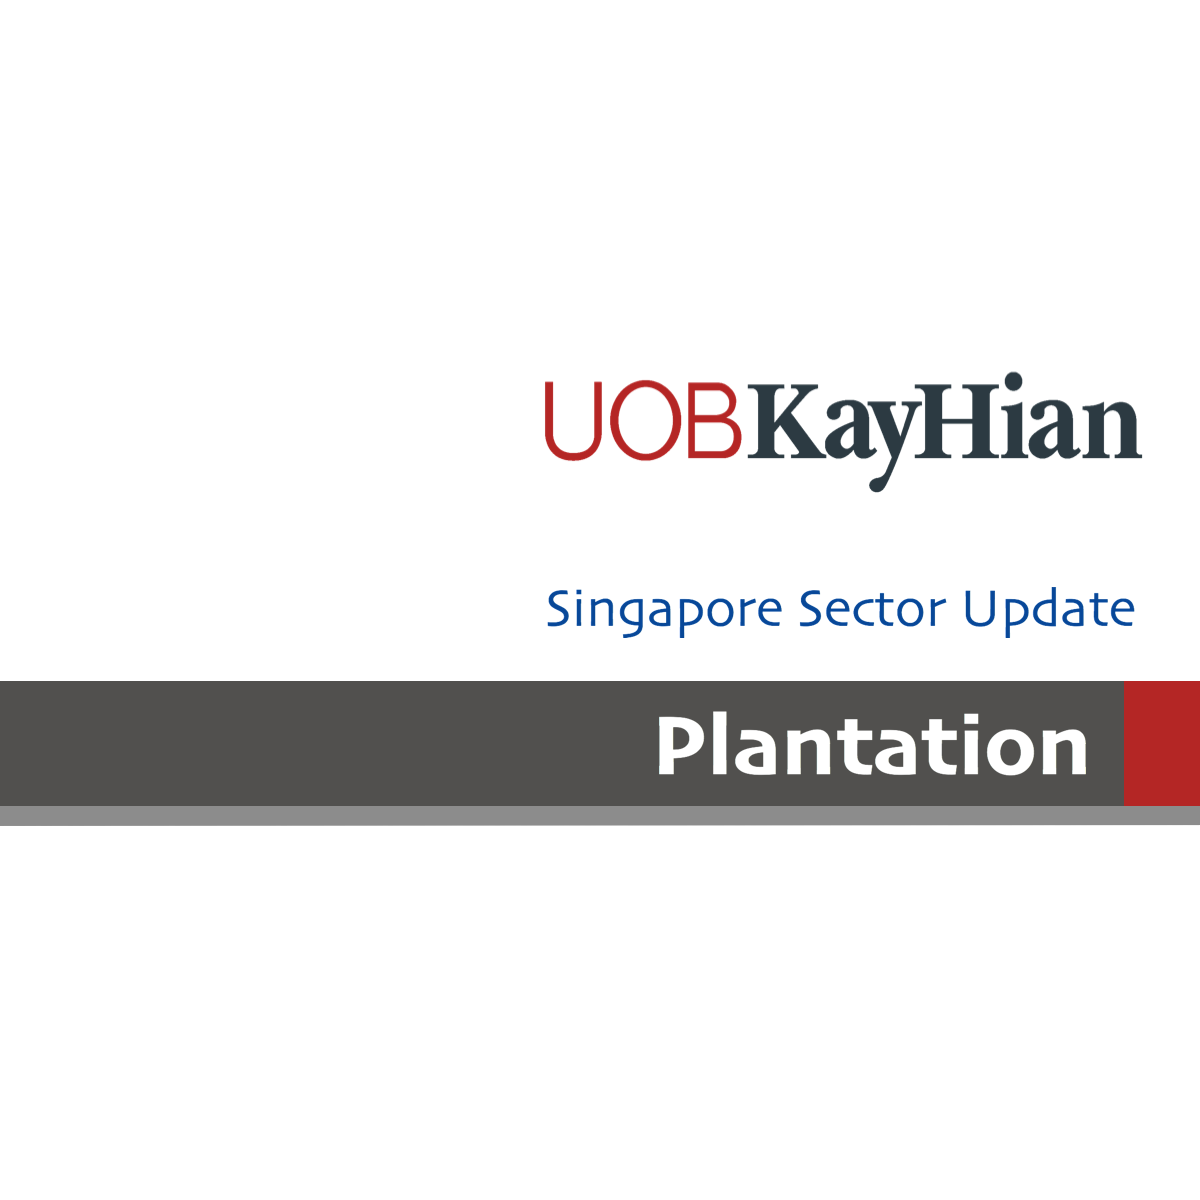 Plantation – Singapore - UOB Kay Hian Research 2018-08-16: Anticipating A Better 3q18 Performance